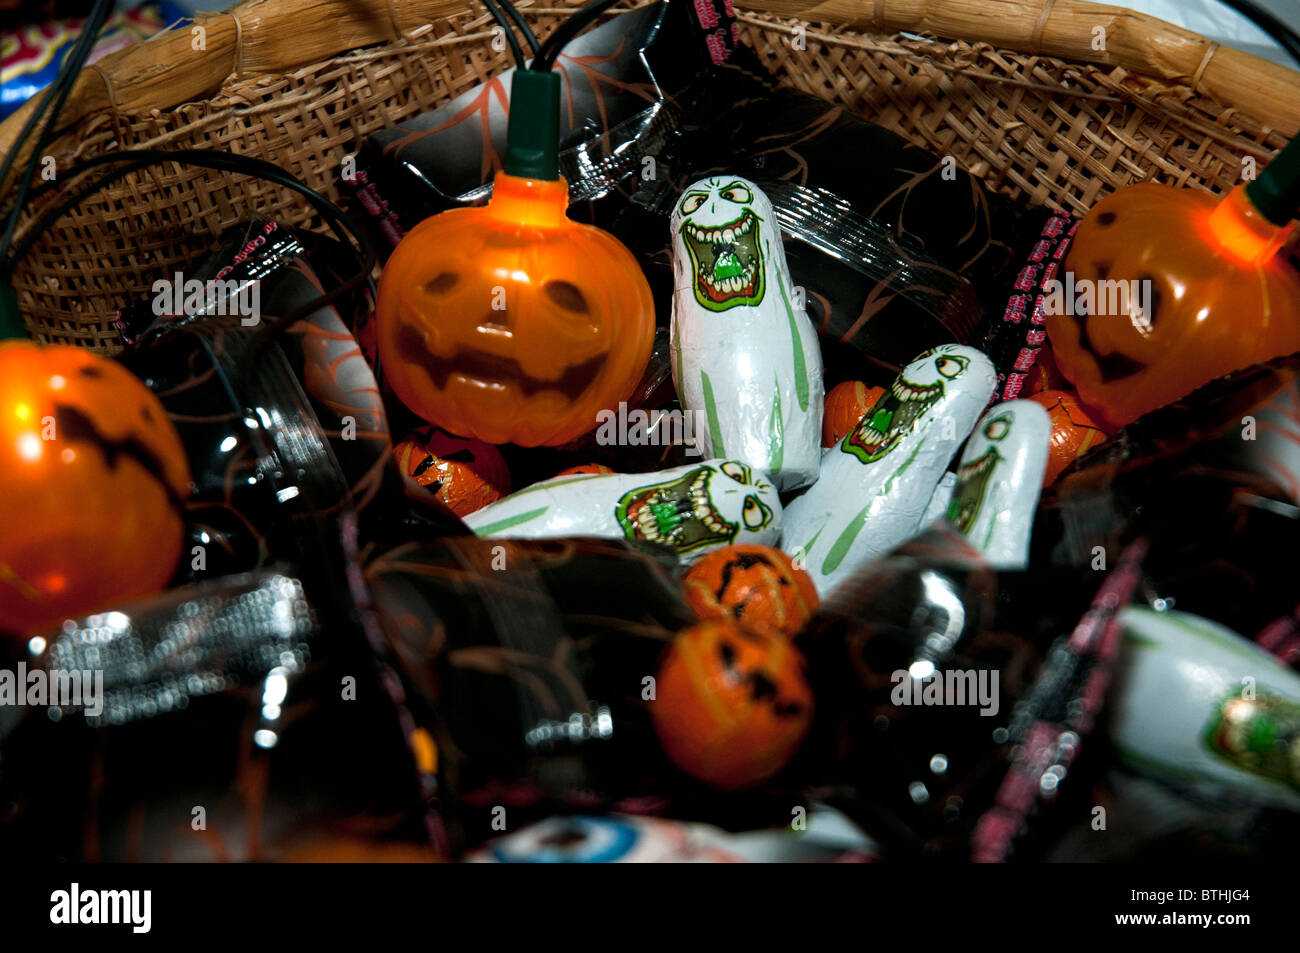 a halloween basket of sweets and offerings to children and trickle treaters on this ghoulish evening of 31st October - Stock Image